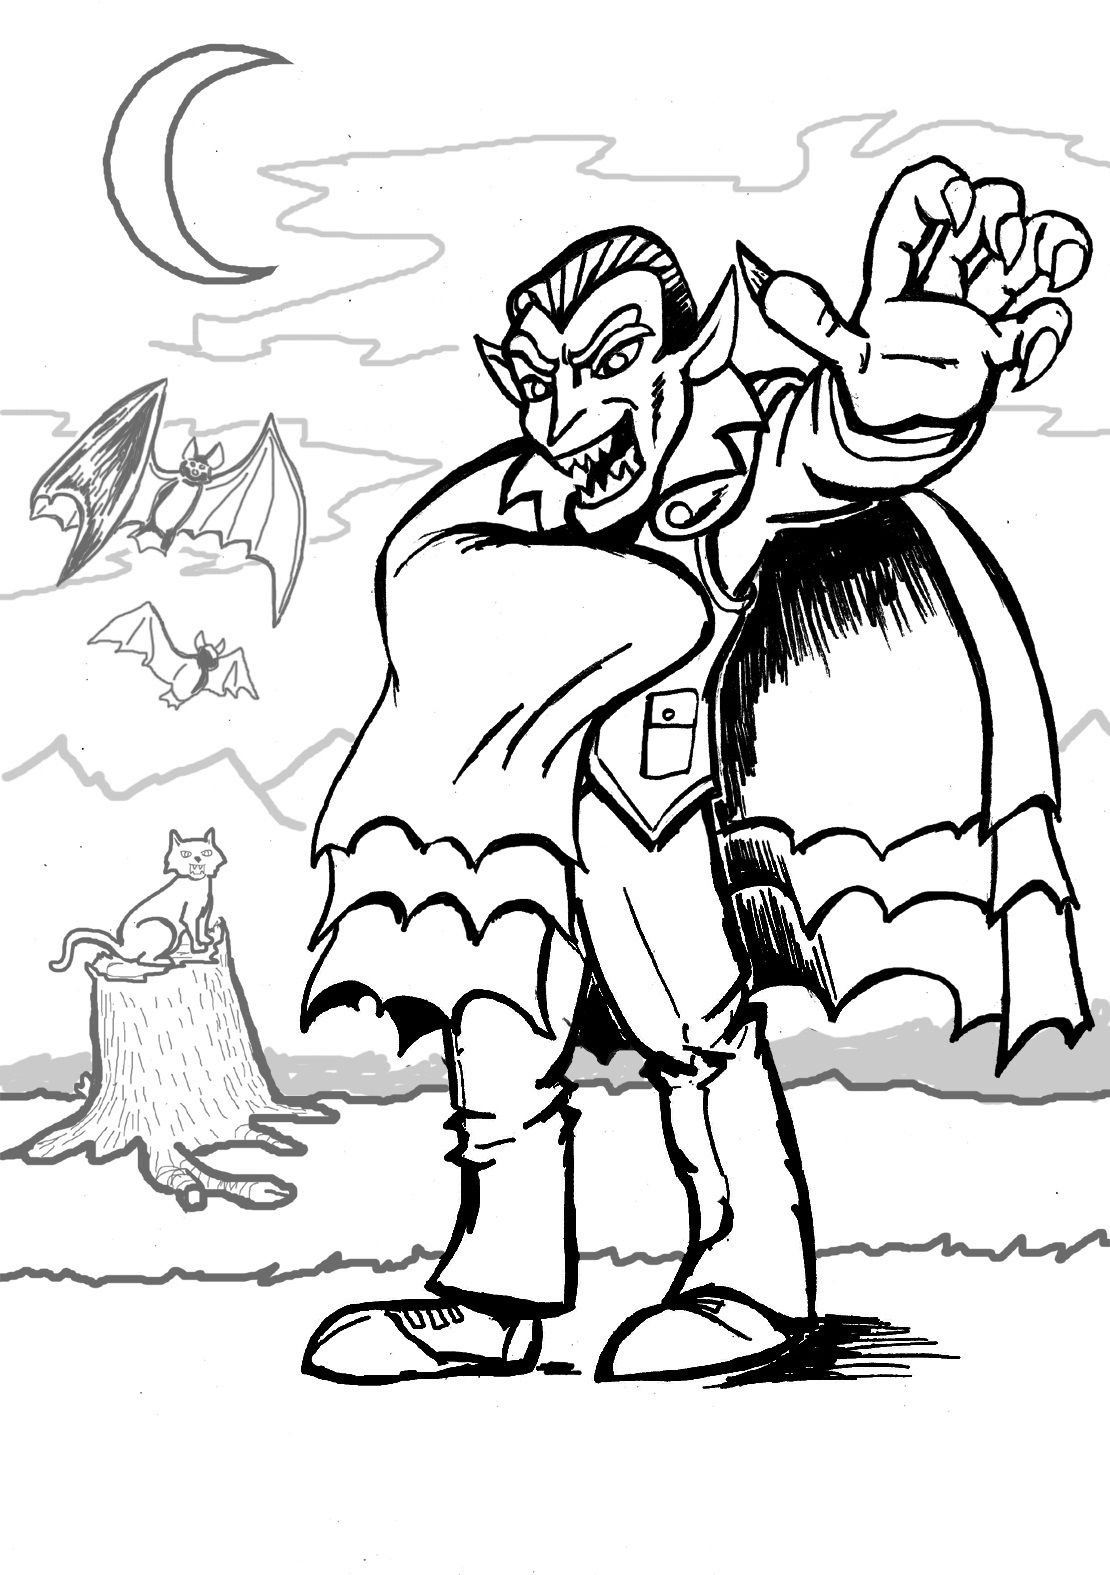 Vampire Printable Coloring Pages Disney Coloring Pages Avengers Coloring Pages Cute Coloring Pages